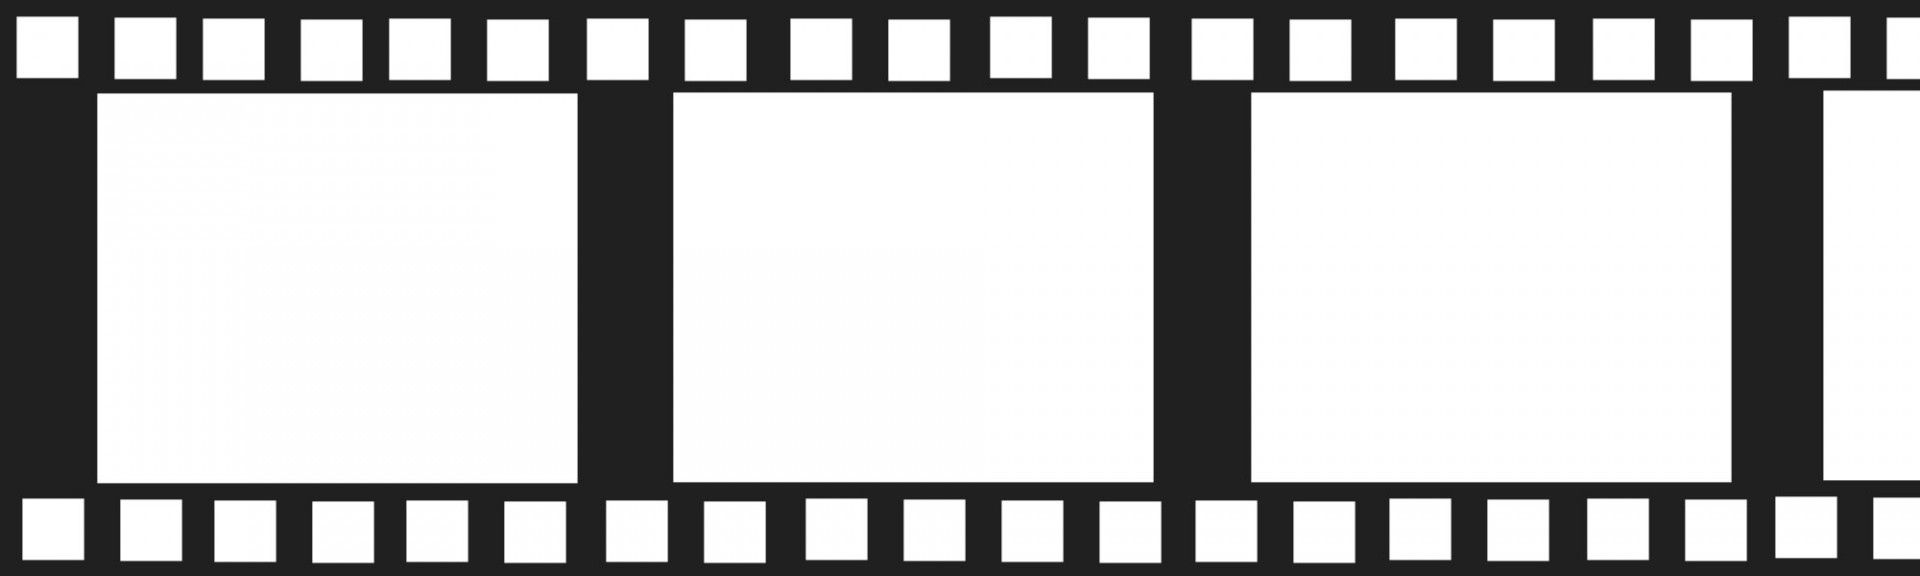 1920x576 Photography Clipart Film Reel